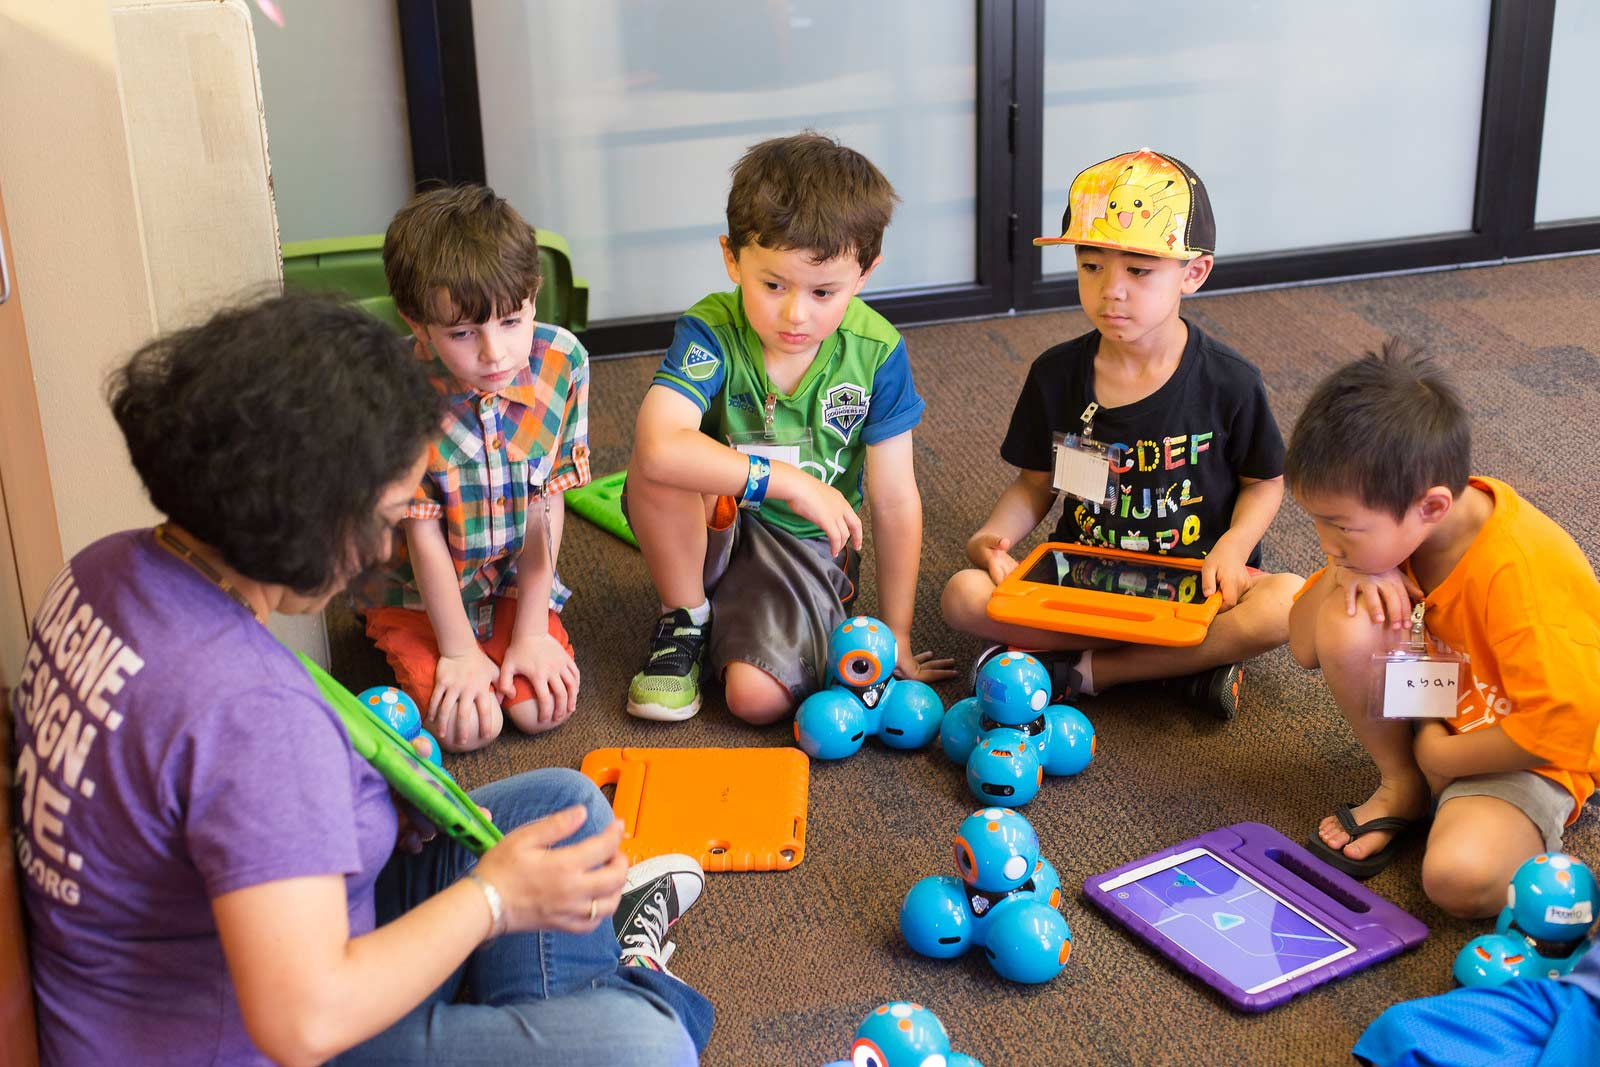 Issaquah Highlands youth tech summer camps